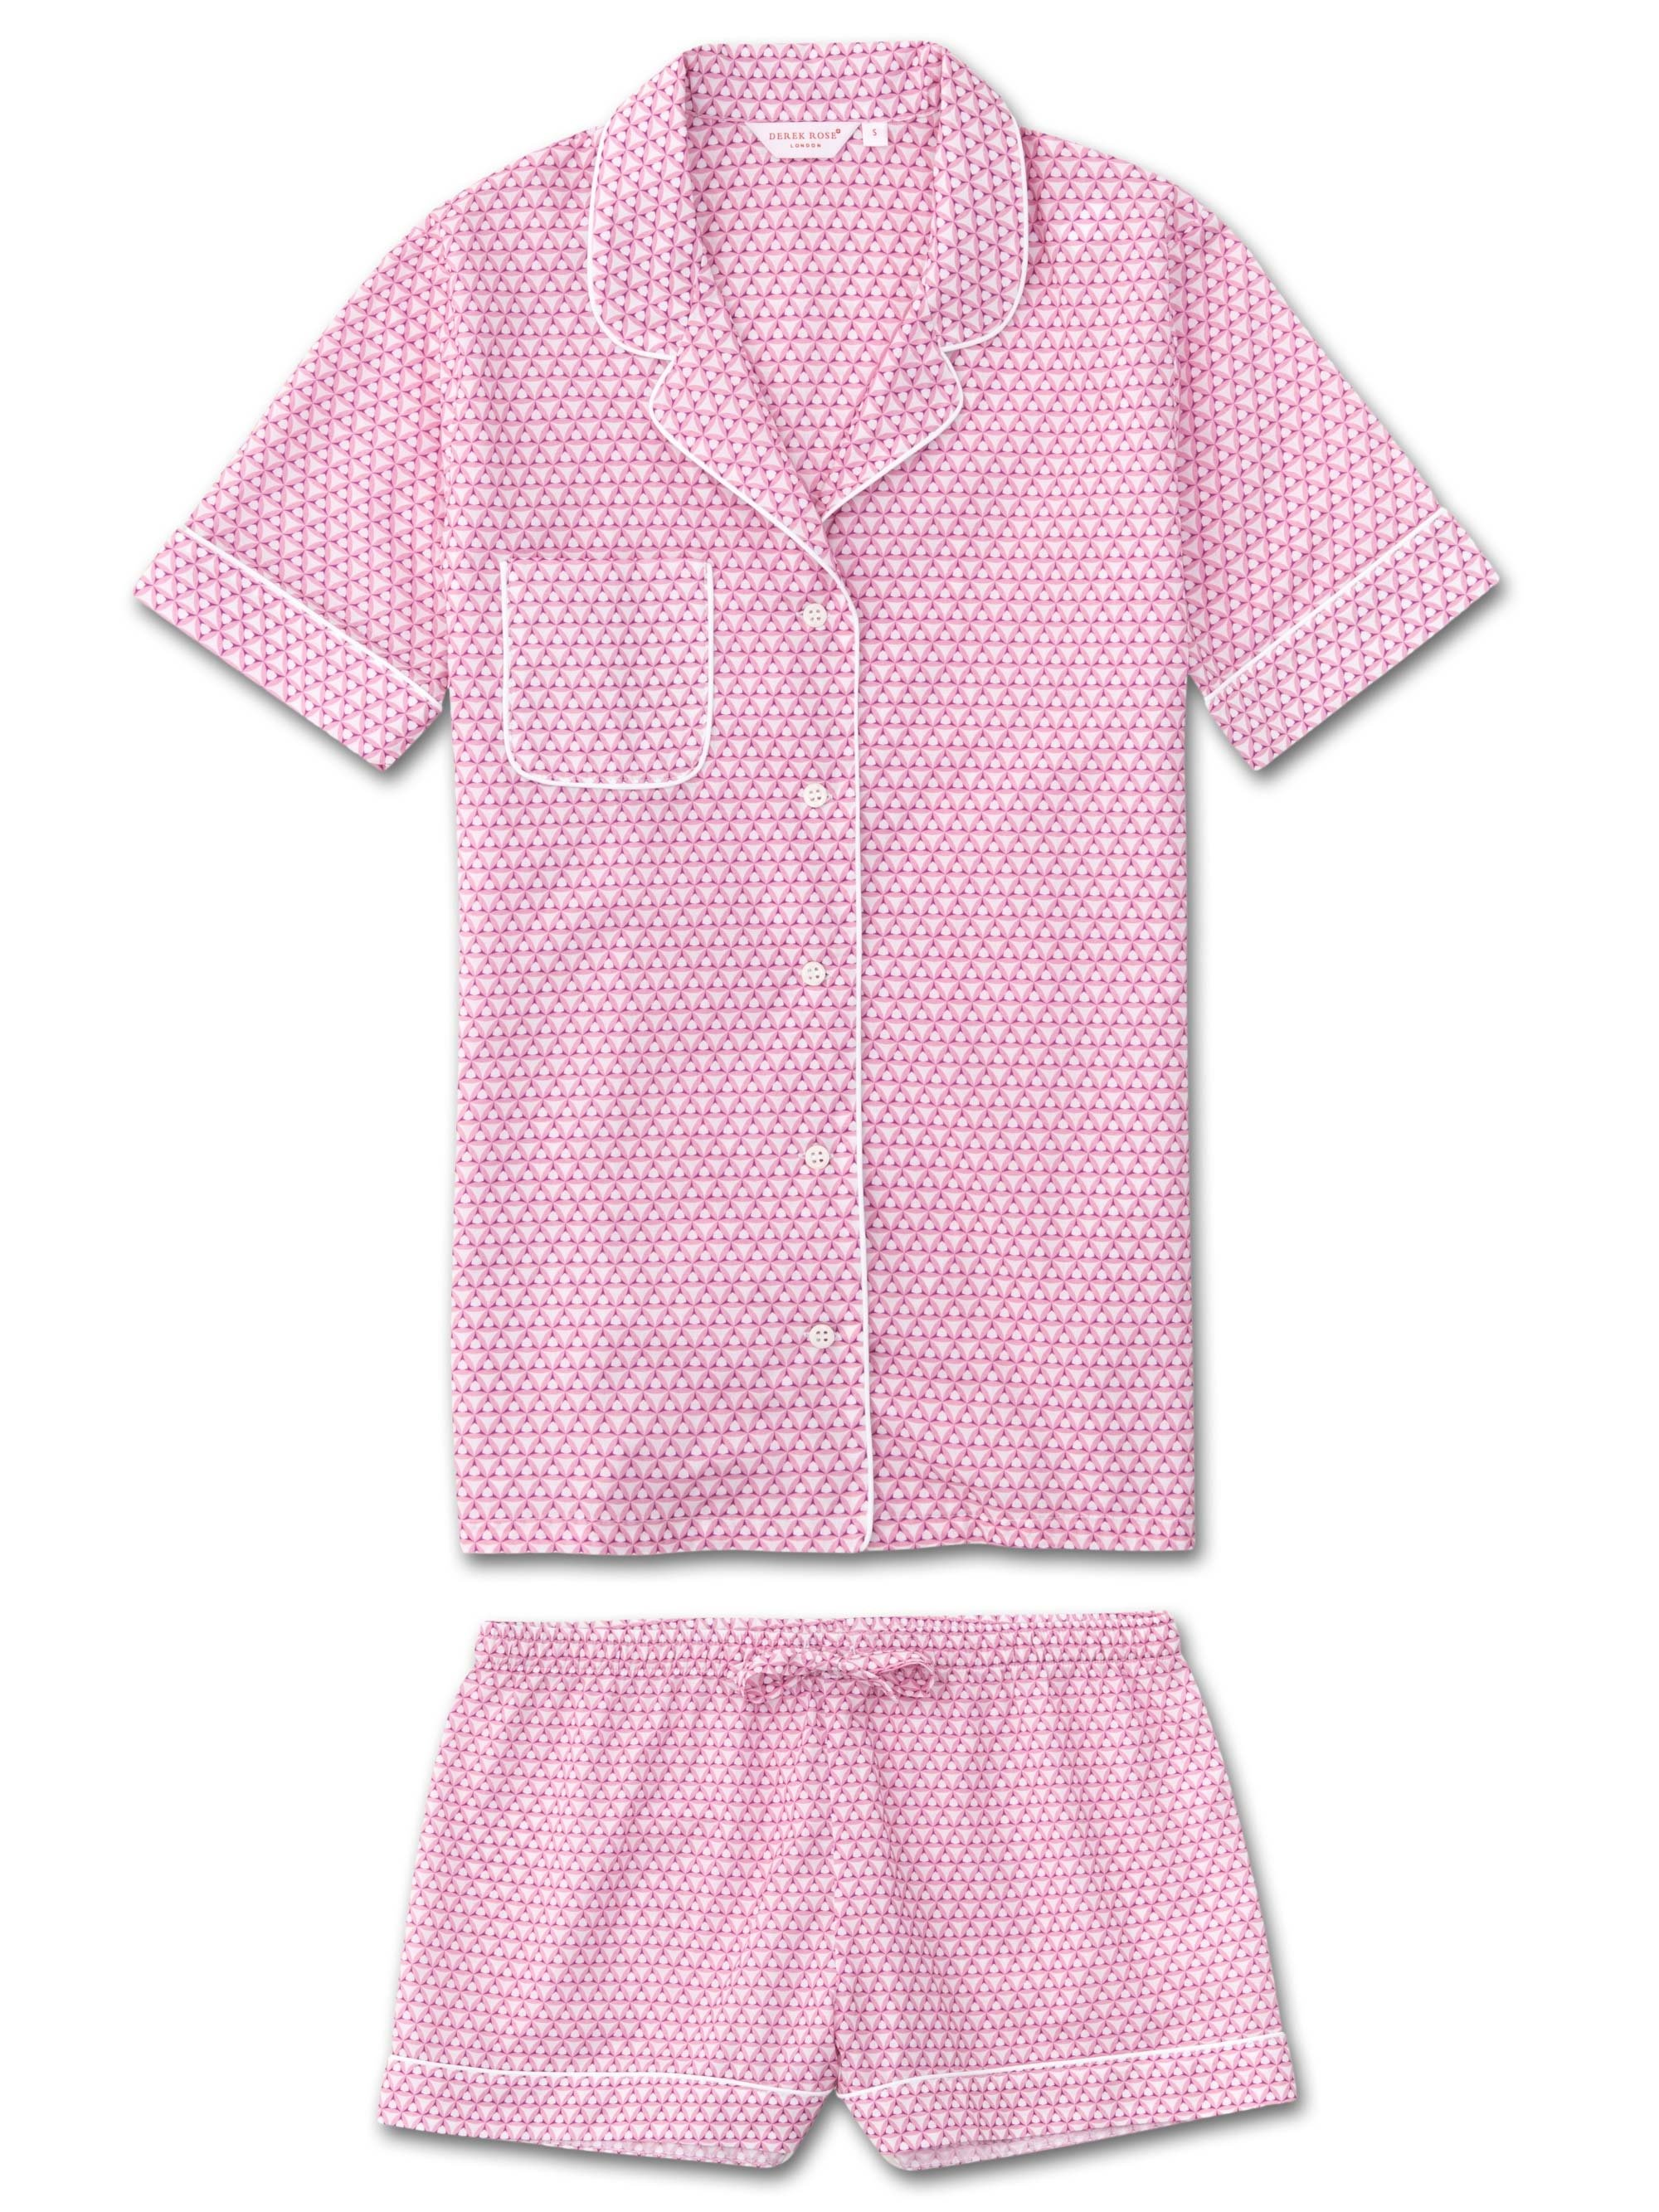 Women's Shortie Pyjamas Ledbury 27 Cotton Batiste Pink